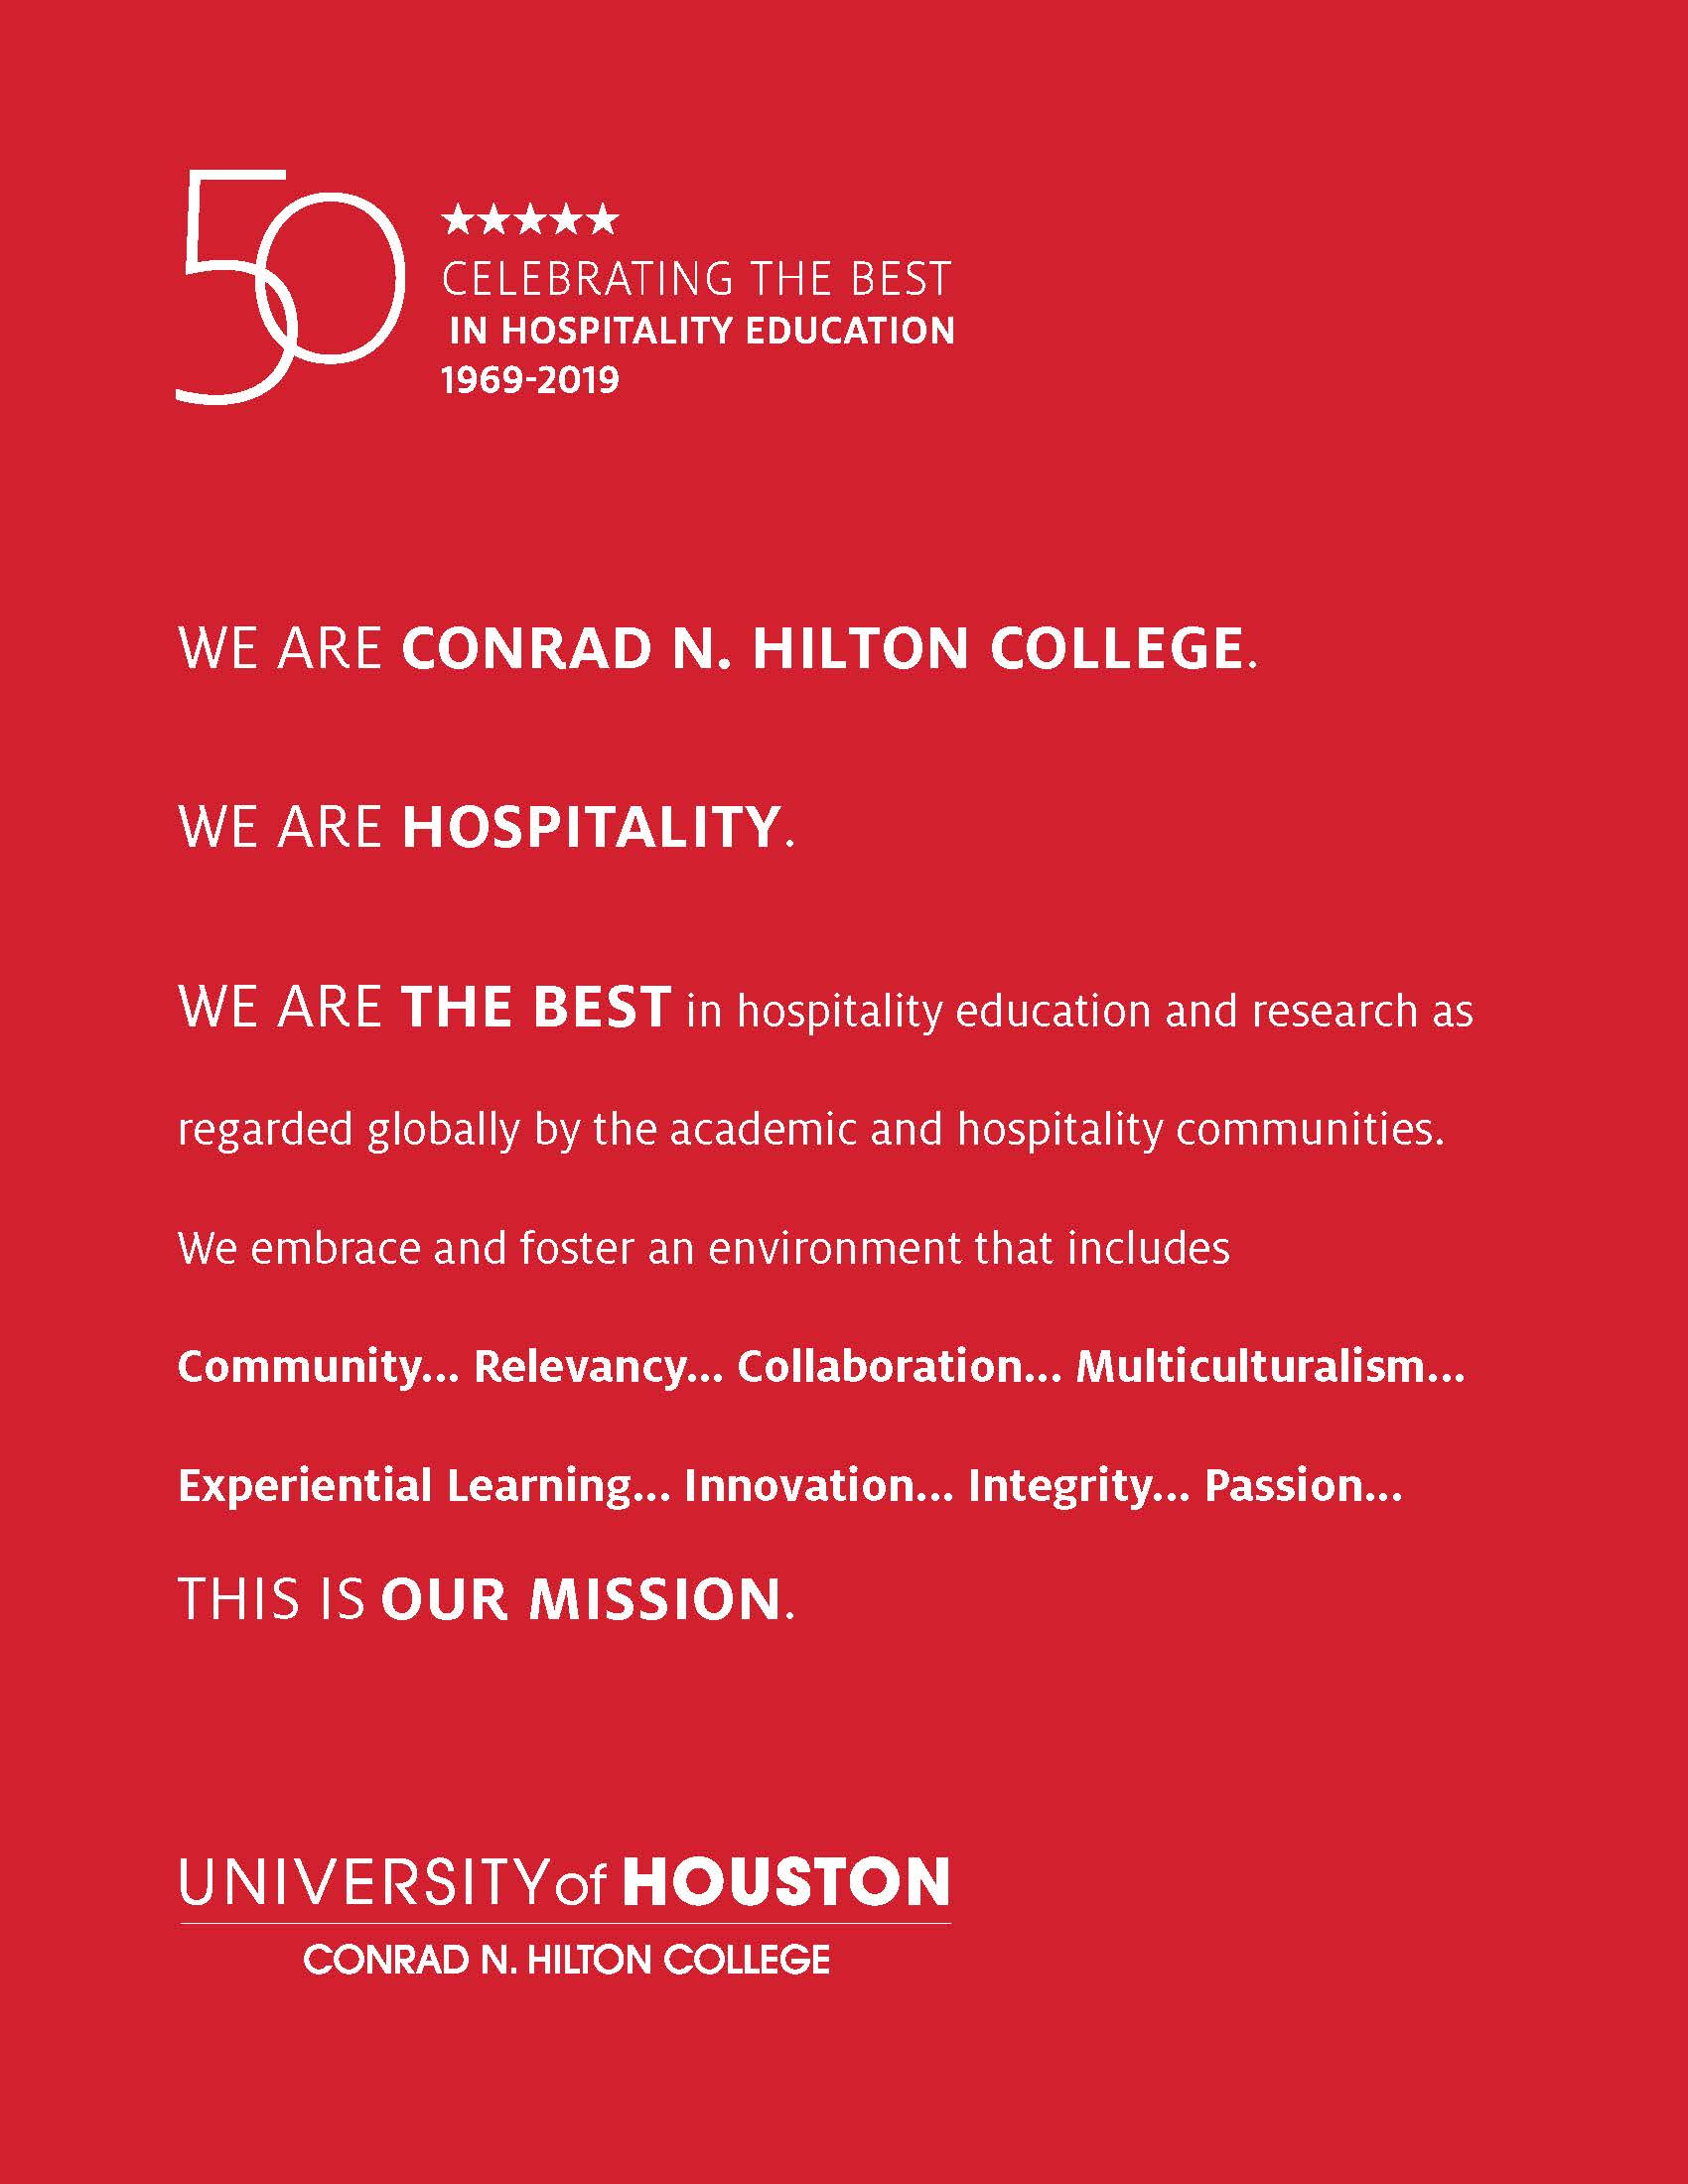 WE ARE CONRAD N. HILTON COLLEGE. WE ARE HOSPITALITY. WE ARE THE BEST in hospitality education and research as regarded globally by the academic and hospitality communities. We embrace and foster an environment that includes Community... Relevancy... Collaboration... Multiculturalism... Experiential Learning... Innovation... Integrity... Passion... THIS IS OUR MISSION.